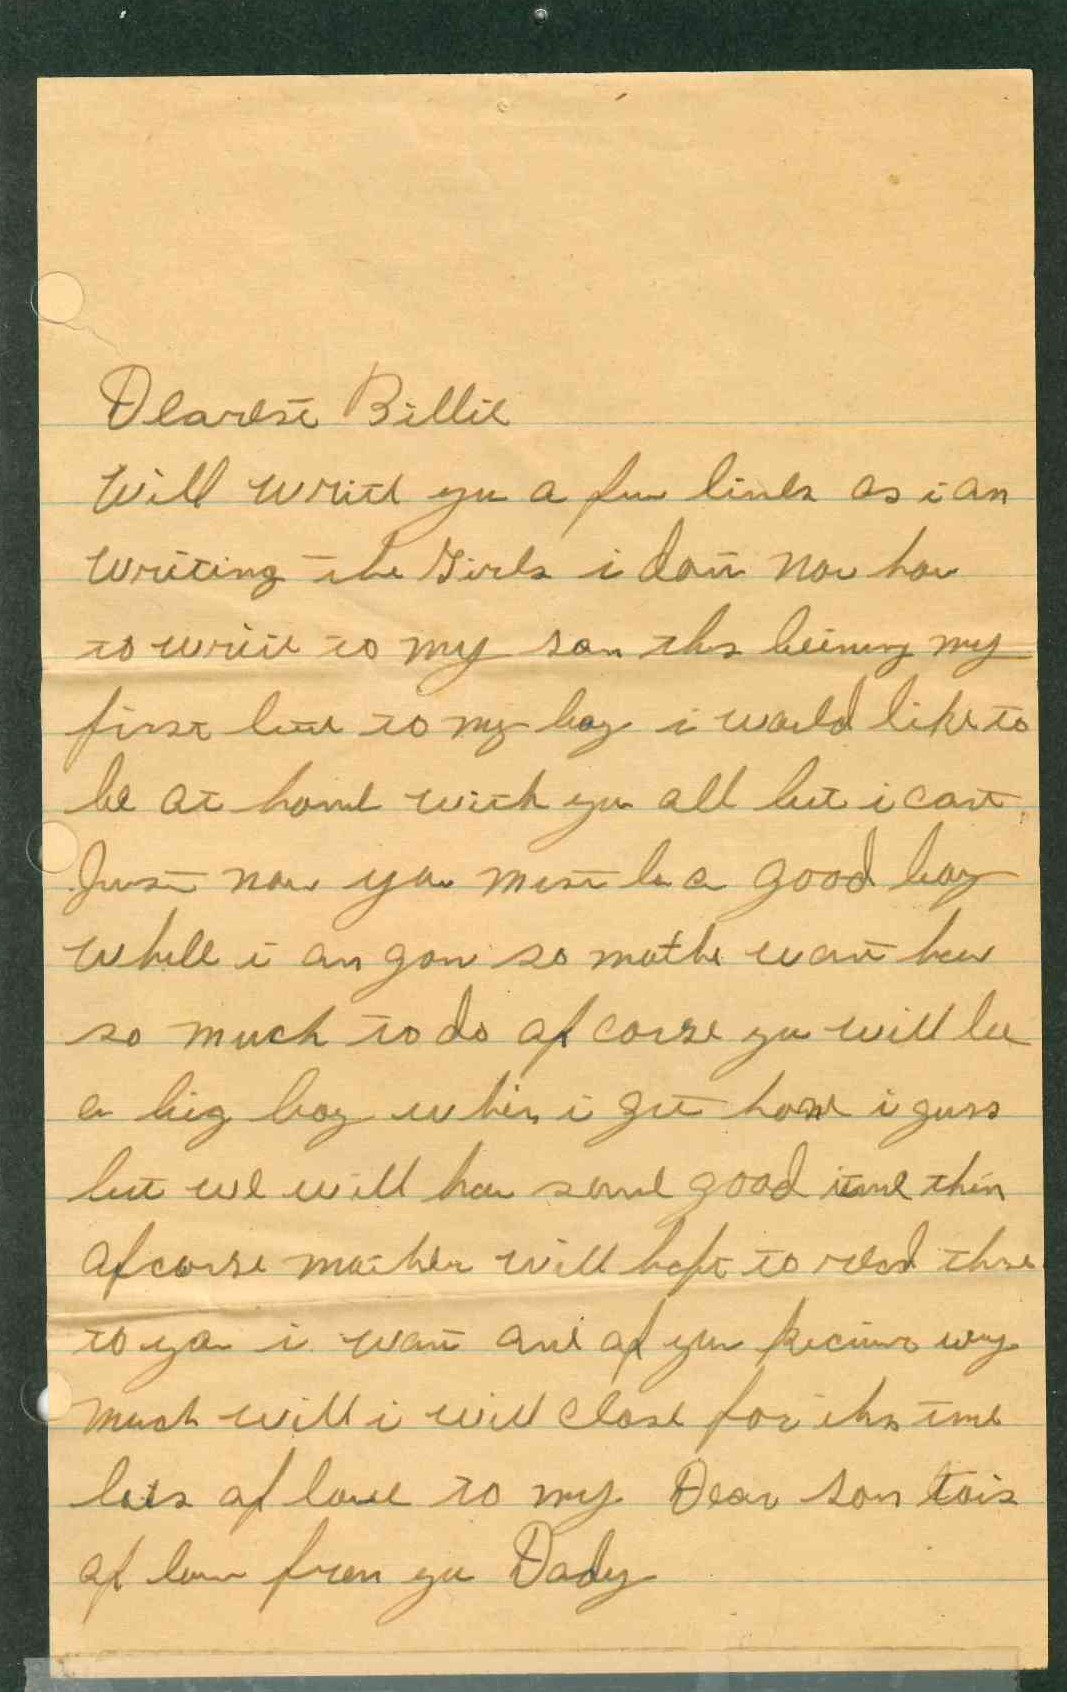 color photo of handwritten note